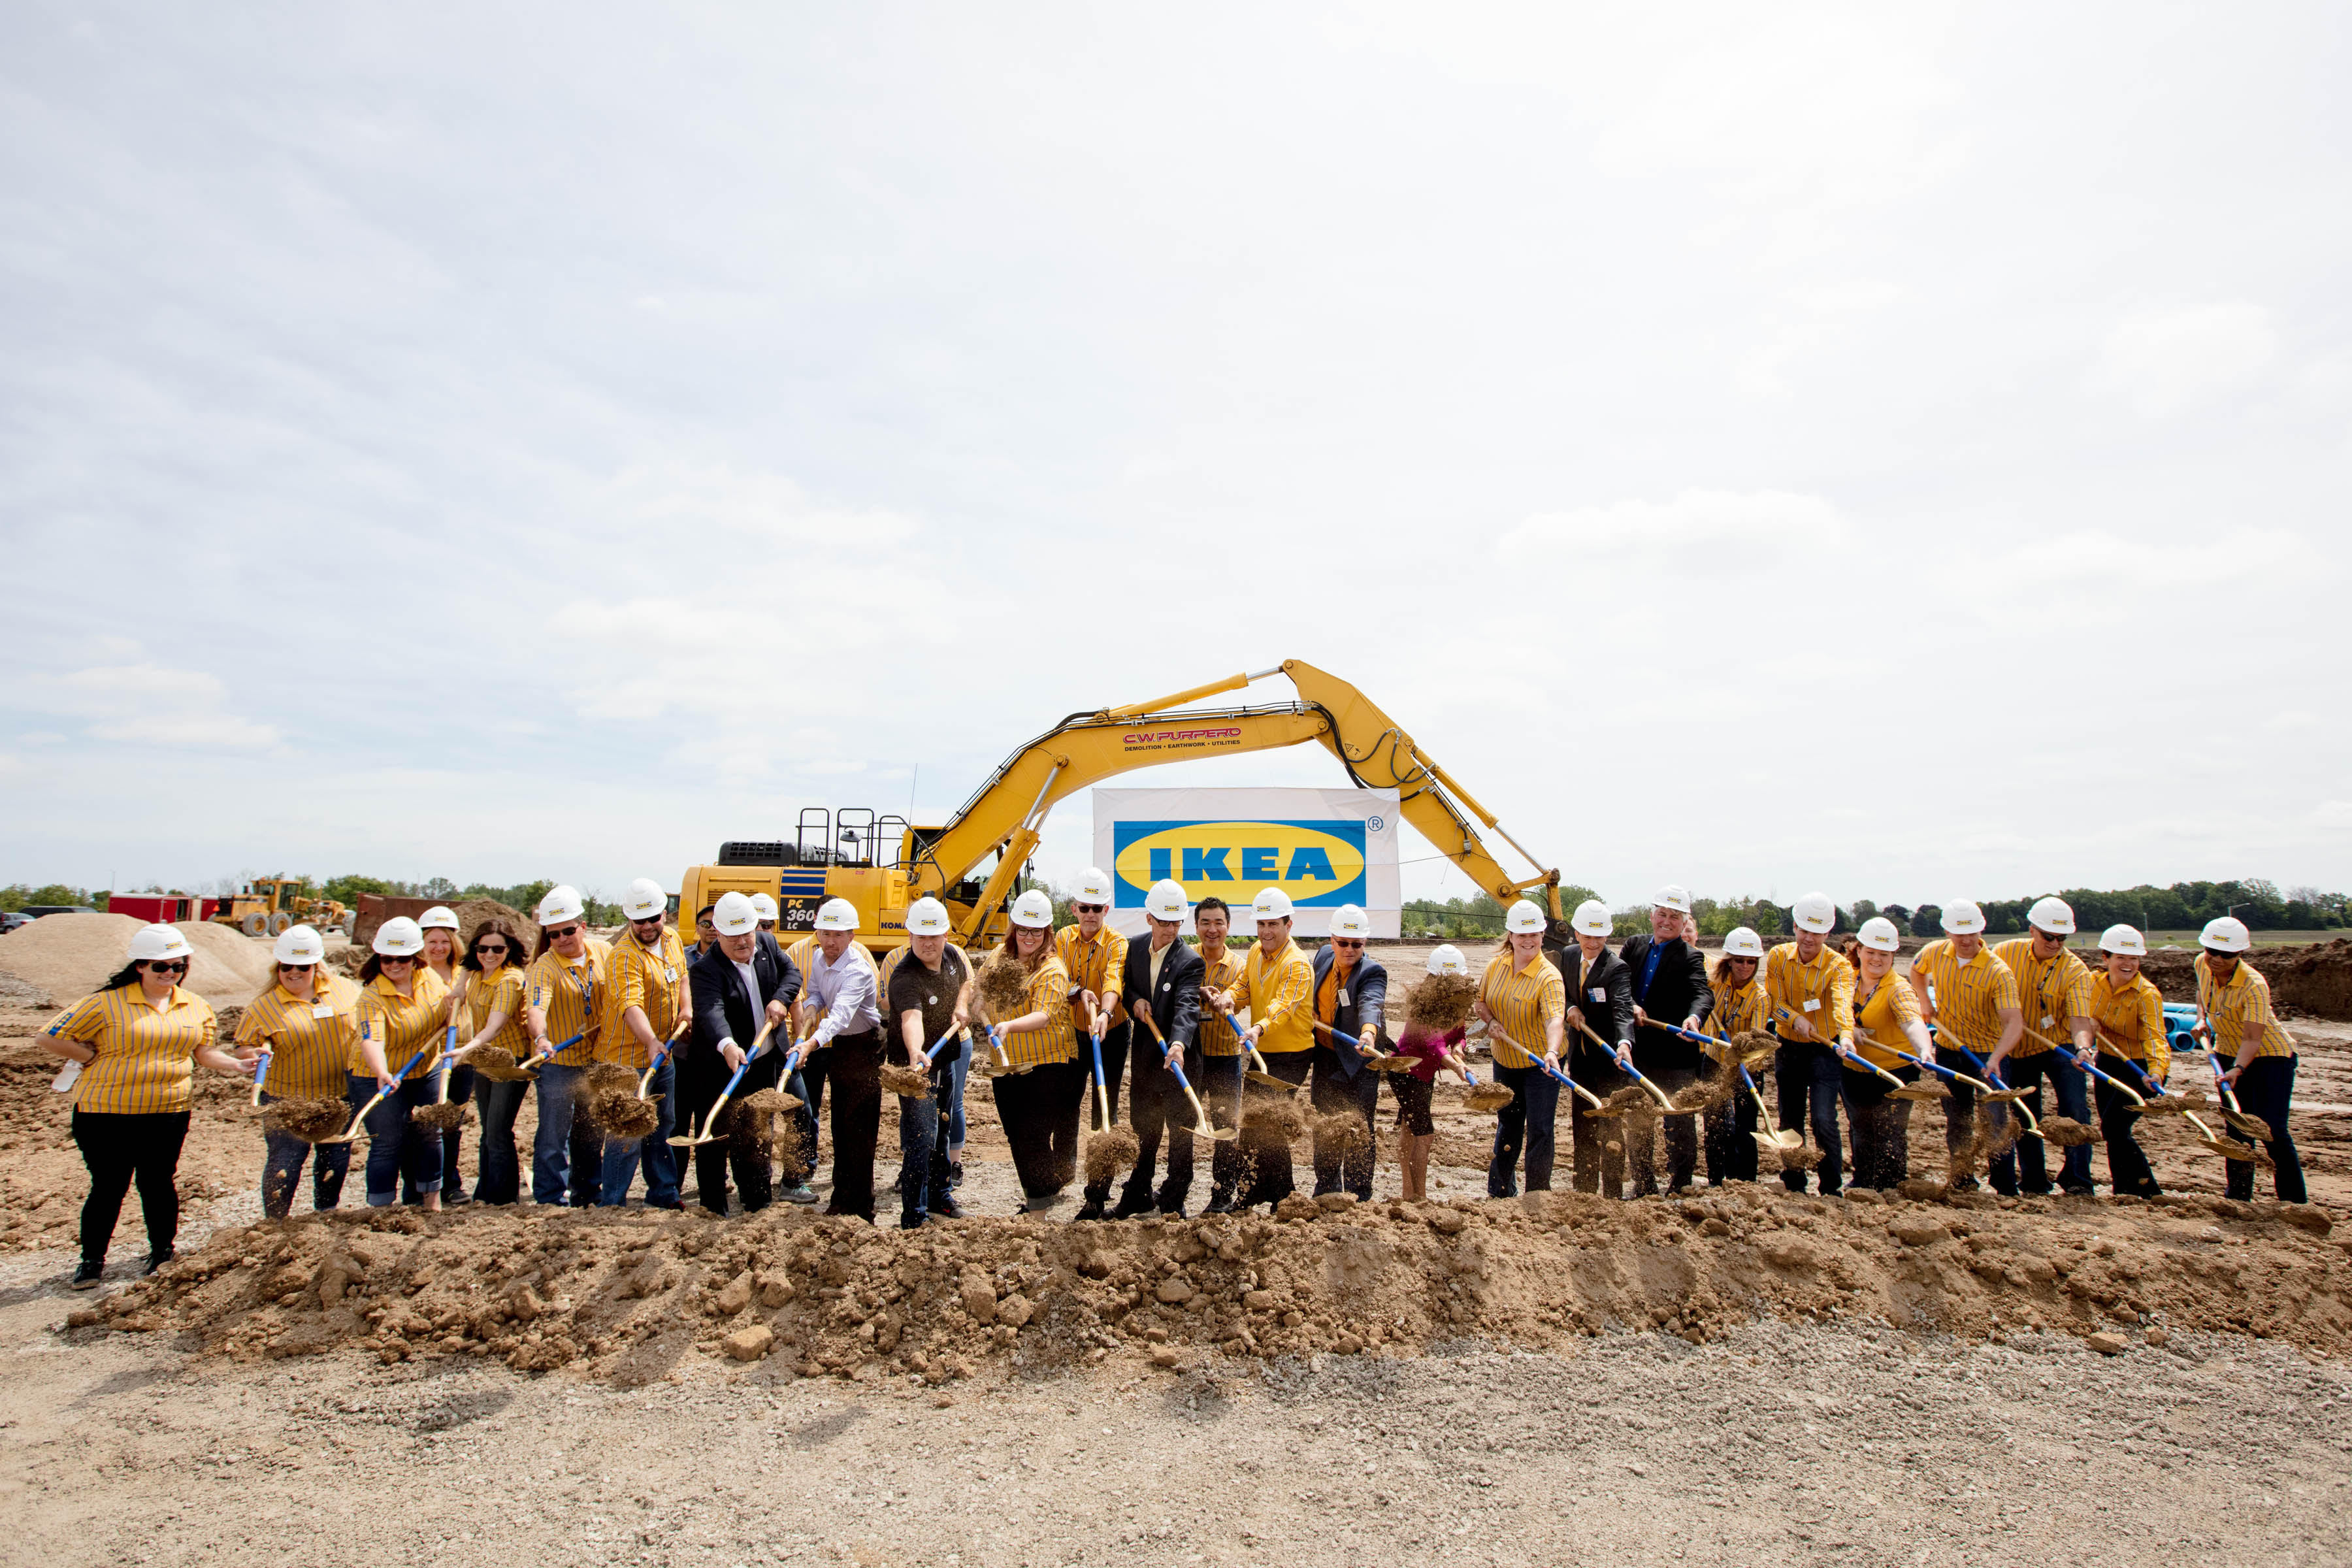 Expanding Its U S  Presence  Swedish Retailer IKEA Breaks Ground for  Milwaukee Area Store  Opening Summer 2018 in Oak Creek  WI   Business Wire. Expanding Its U S  Presence  Swedish Retailer IKEA Breaks Ground